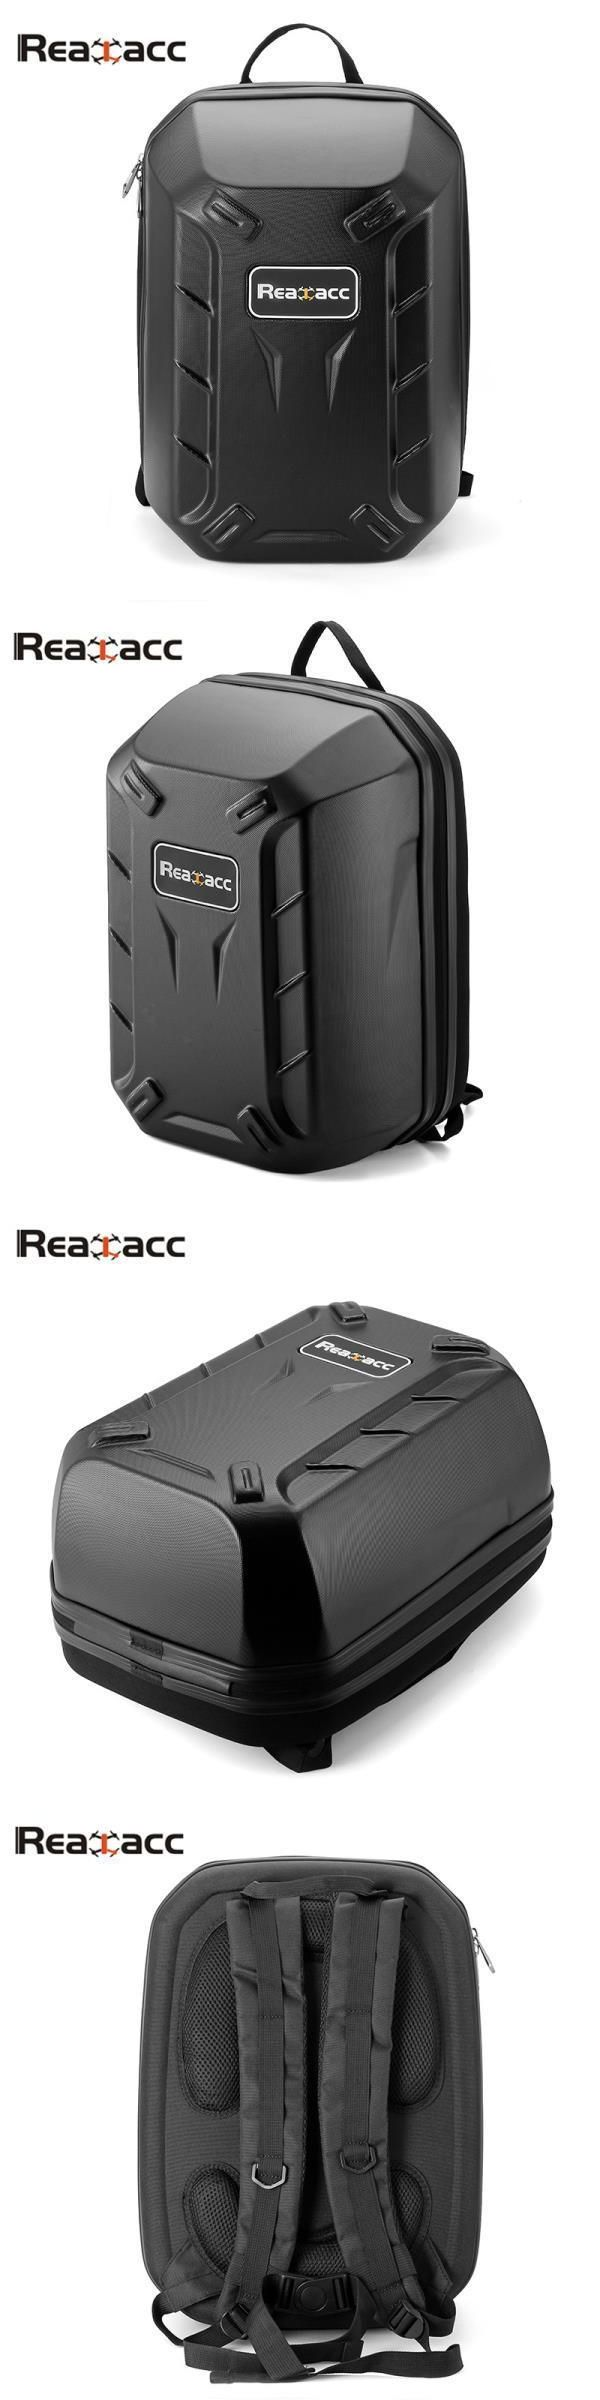 Other RC Parts and Accs 182213: New Realacc Waterproof Hardshell Backpack For Dji Phantom 4 Dji Phantom 4 Pro -> BUY IT NOW ONLY: $39.95 on eBay!